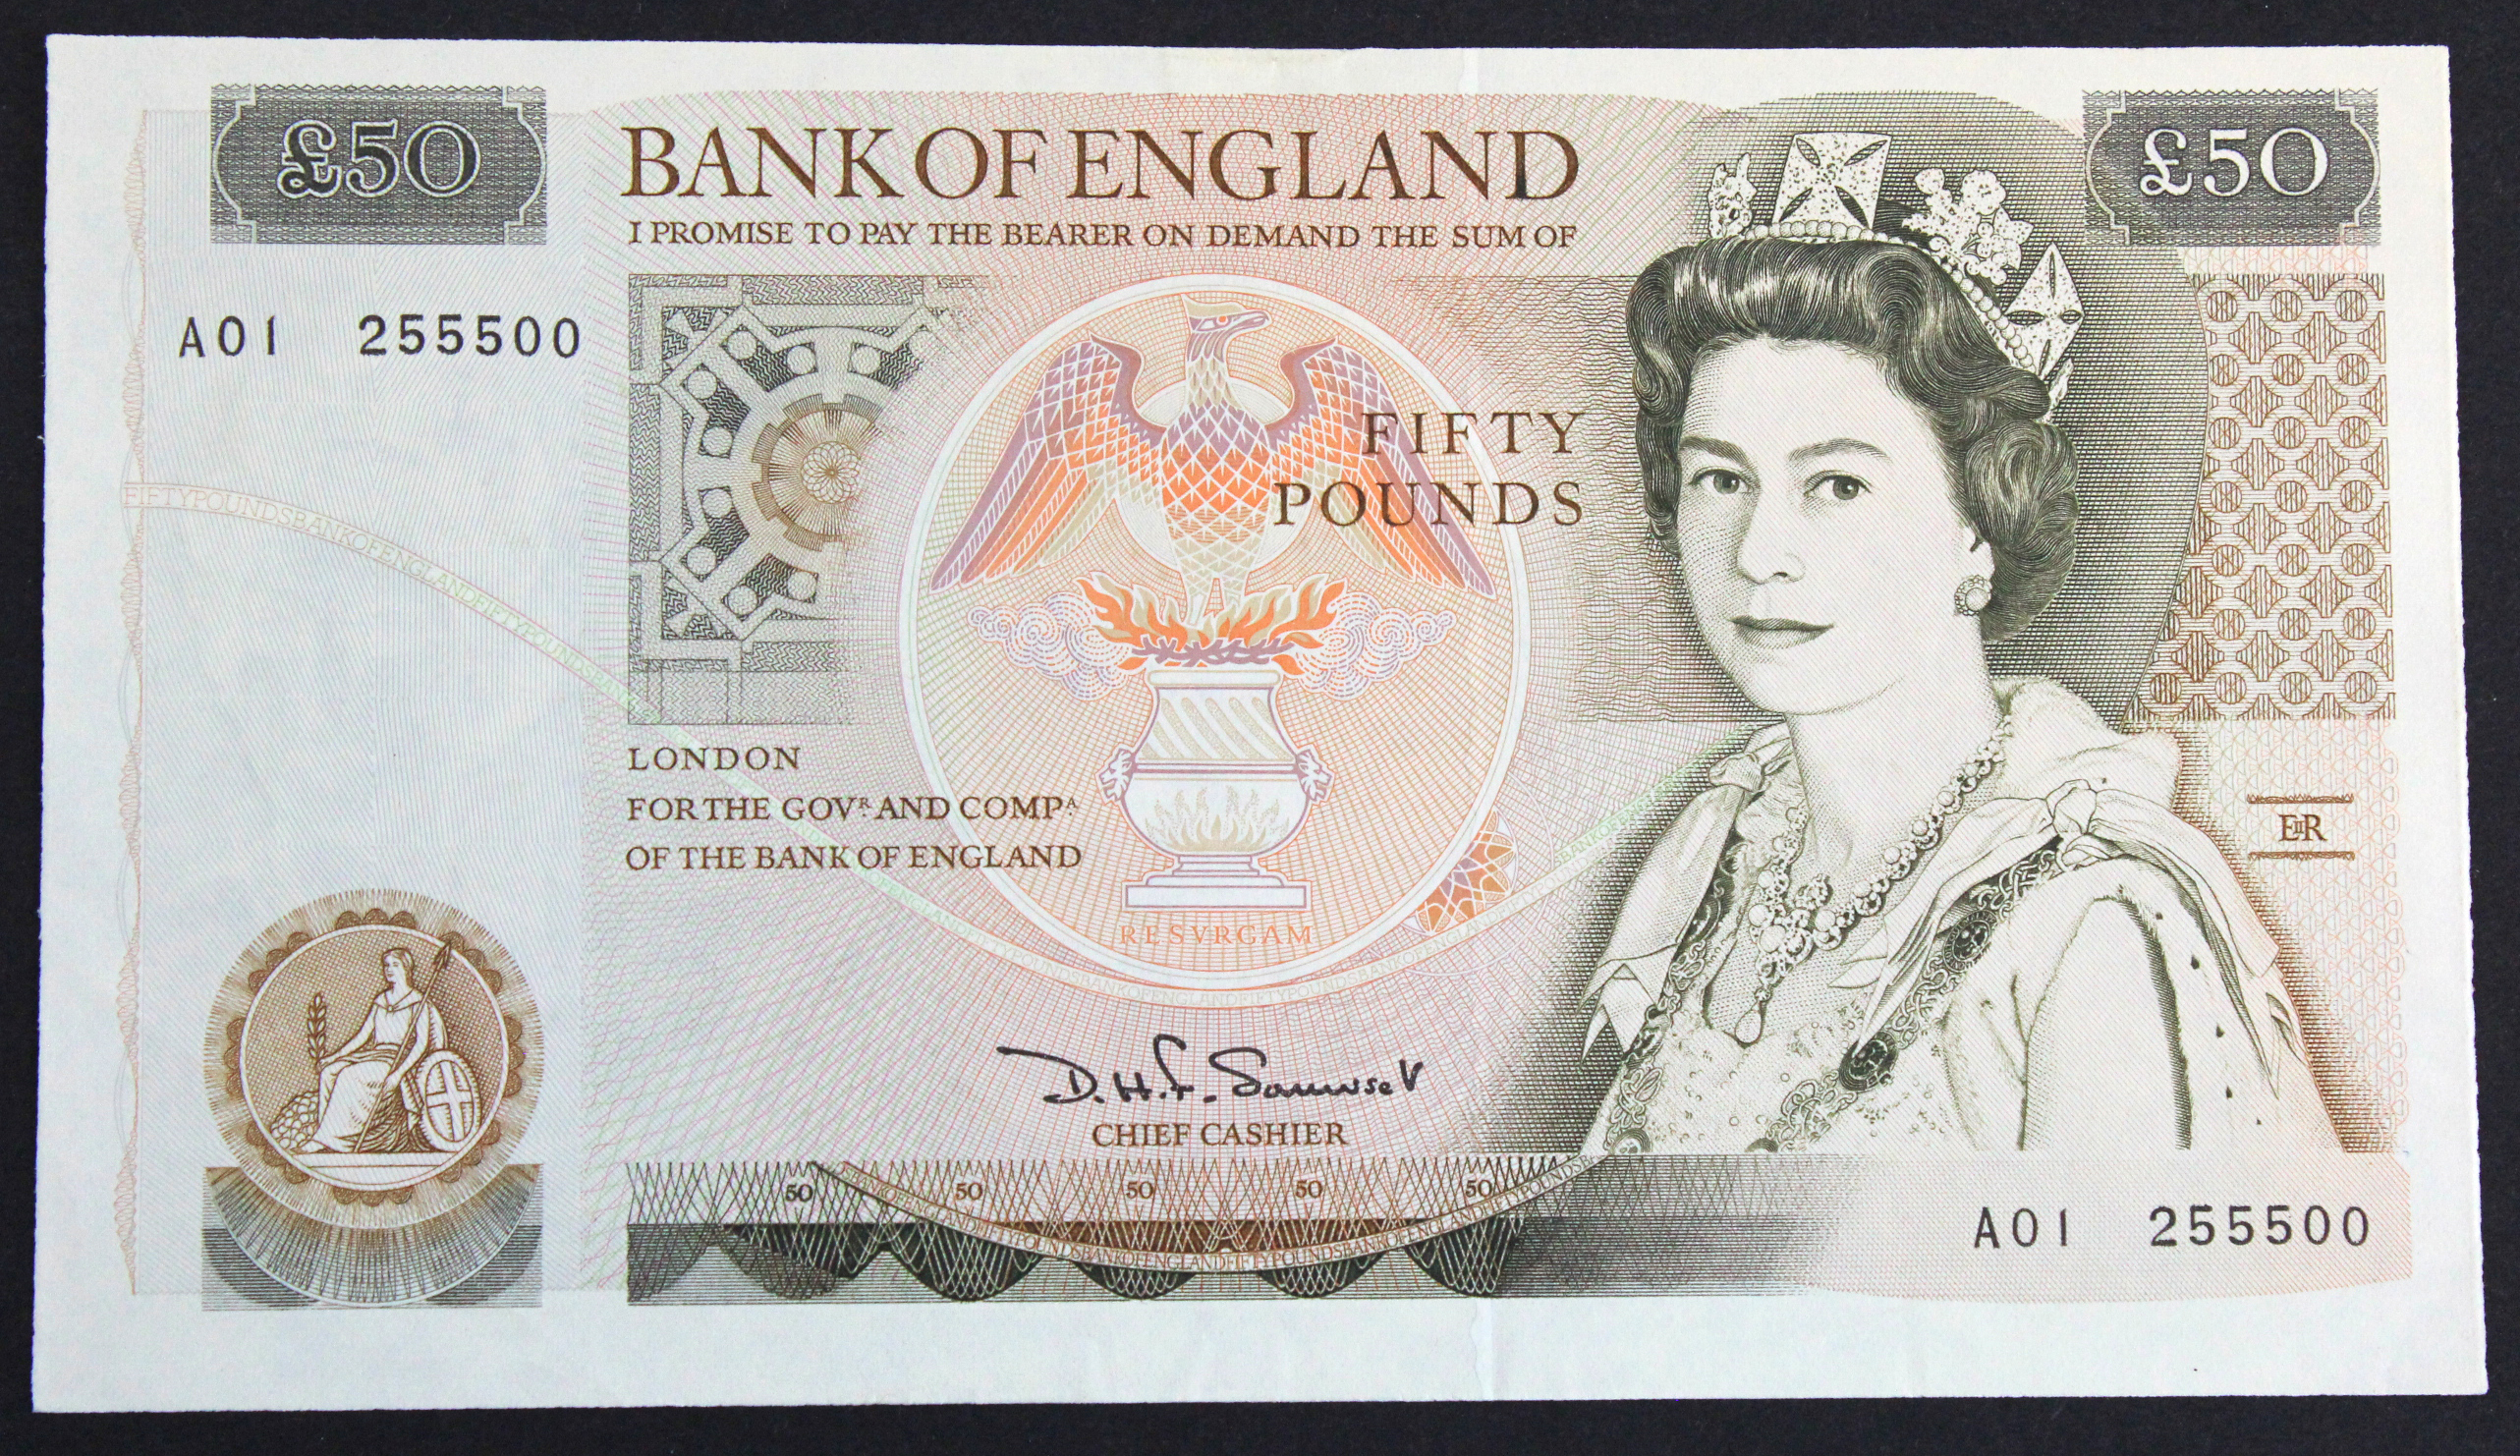 Somerset 50 Pounds issued 1981, FIRST RUN serial A01 255500 (B352, Pick381a) EF